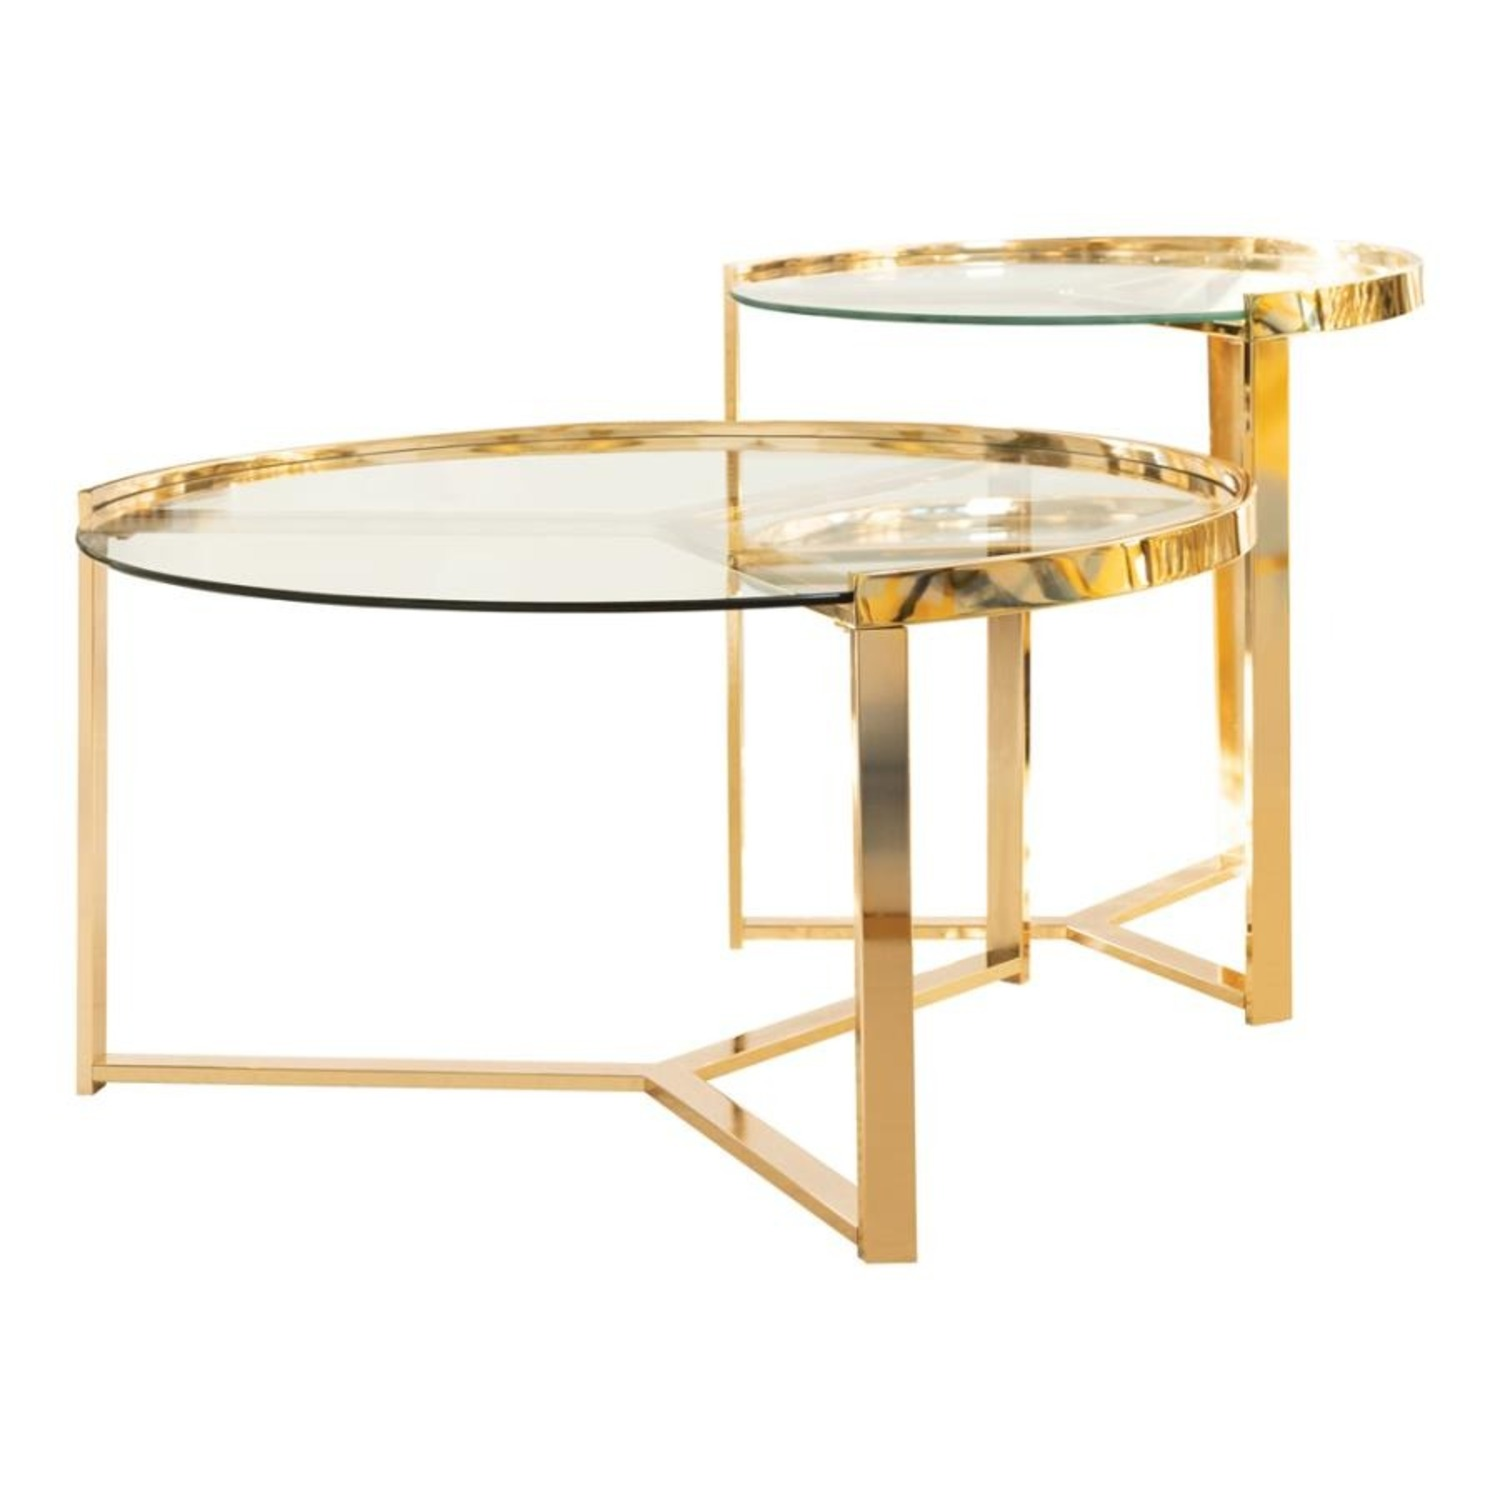 Nesting Table In Gold Finish W/ Tempered Glass - image-0